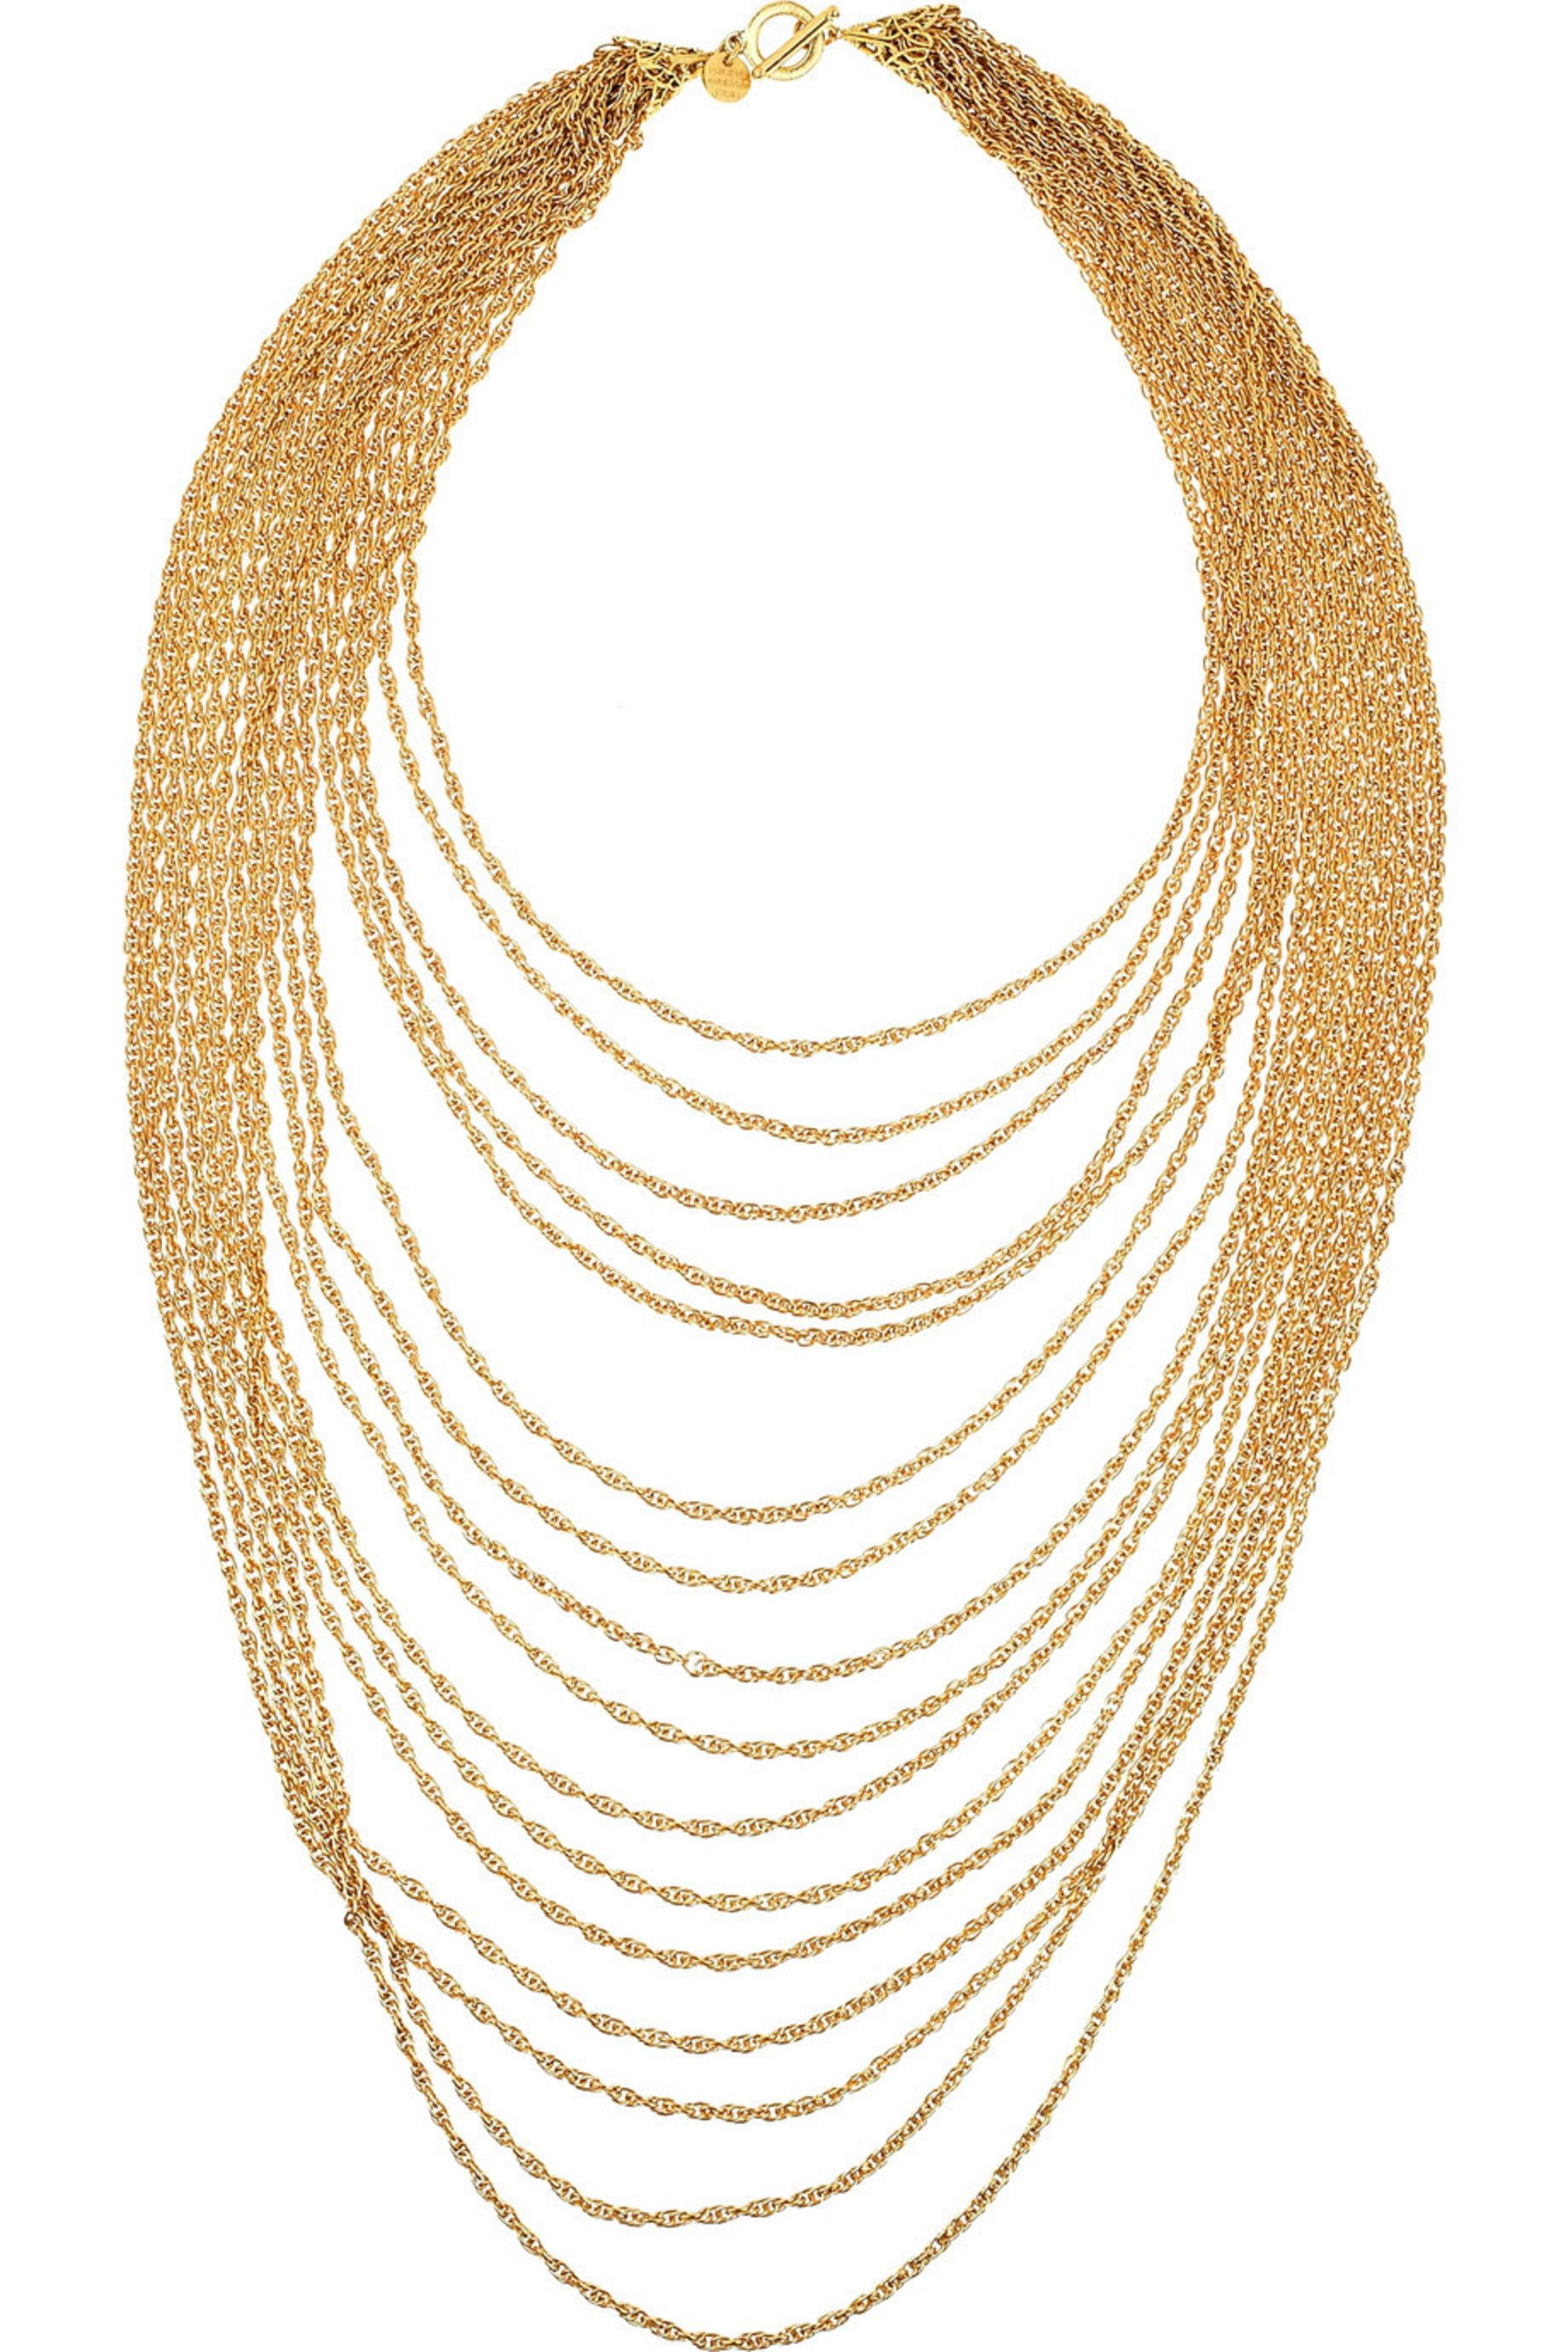 Philippe Audibert Chaine gold-plated multi-strand necklace